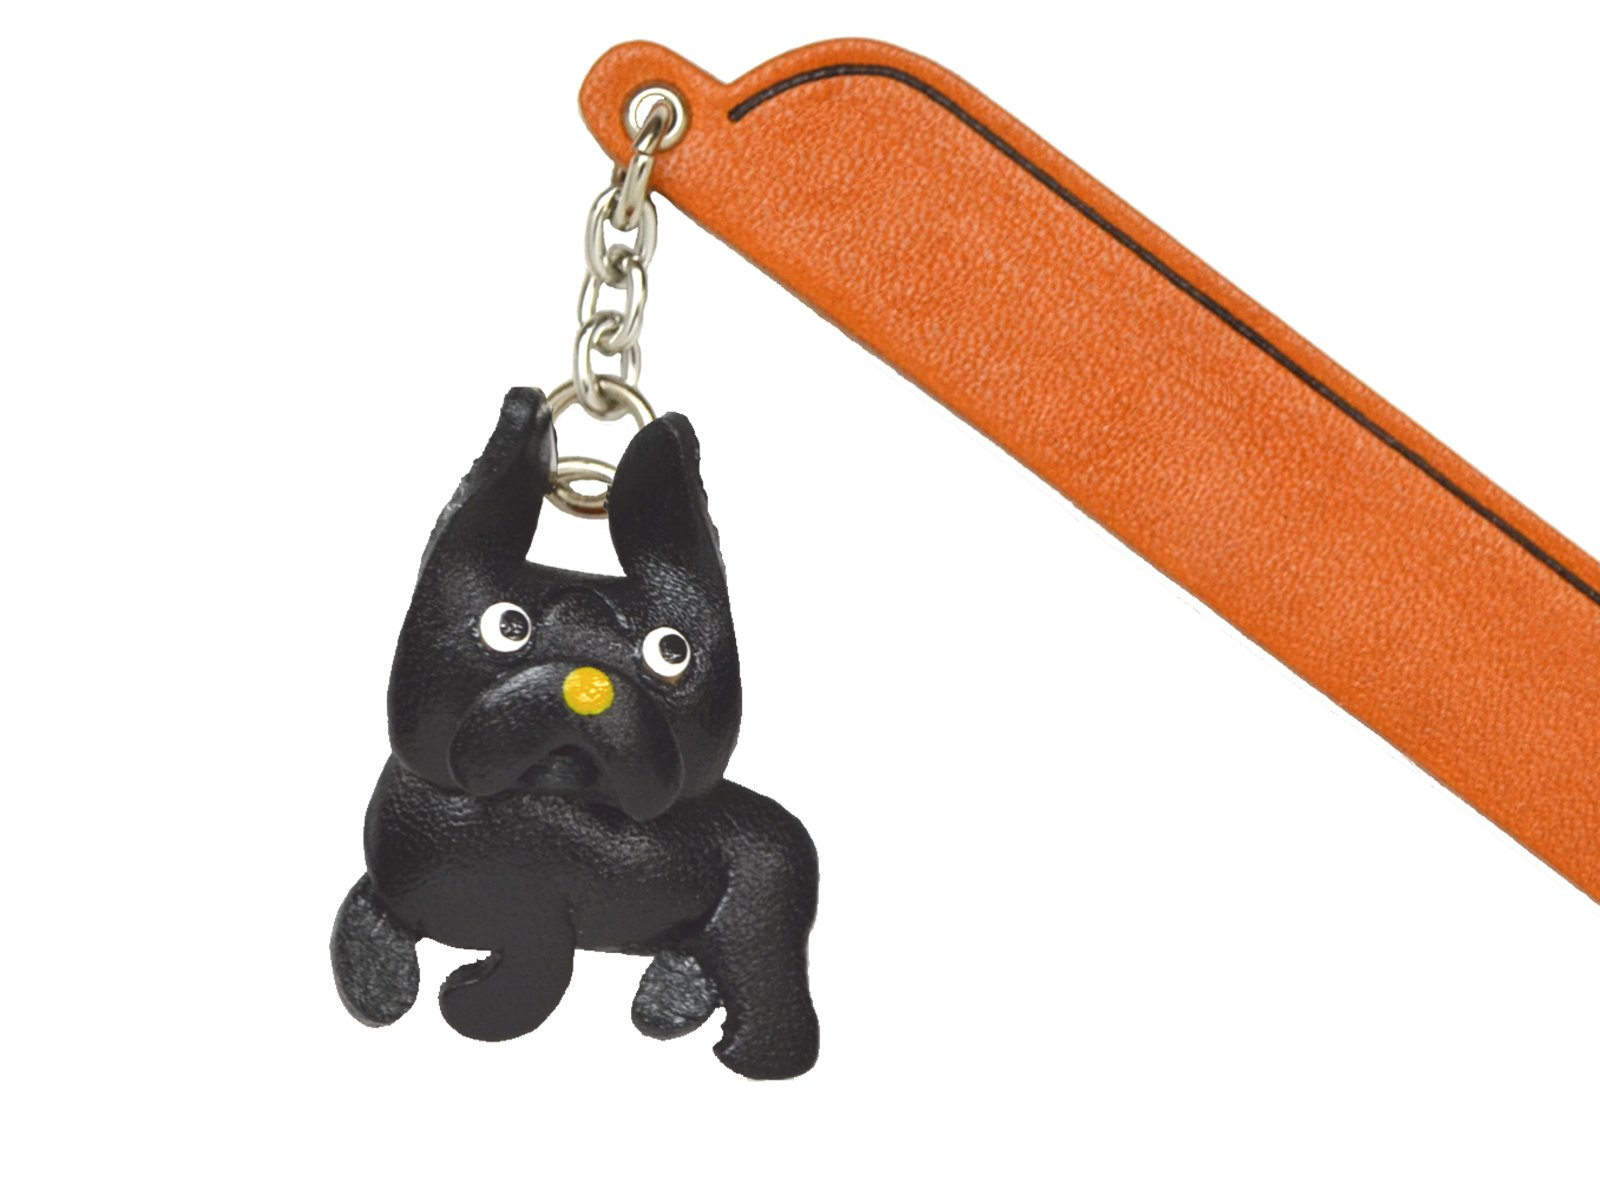 French bulldog Black Leather dog Charm Bookmarker VANCA Handmade in Japan